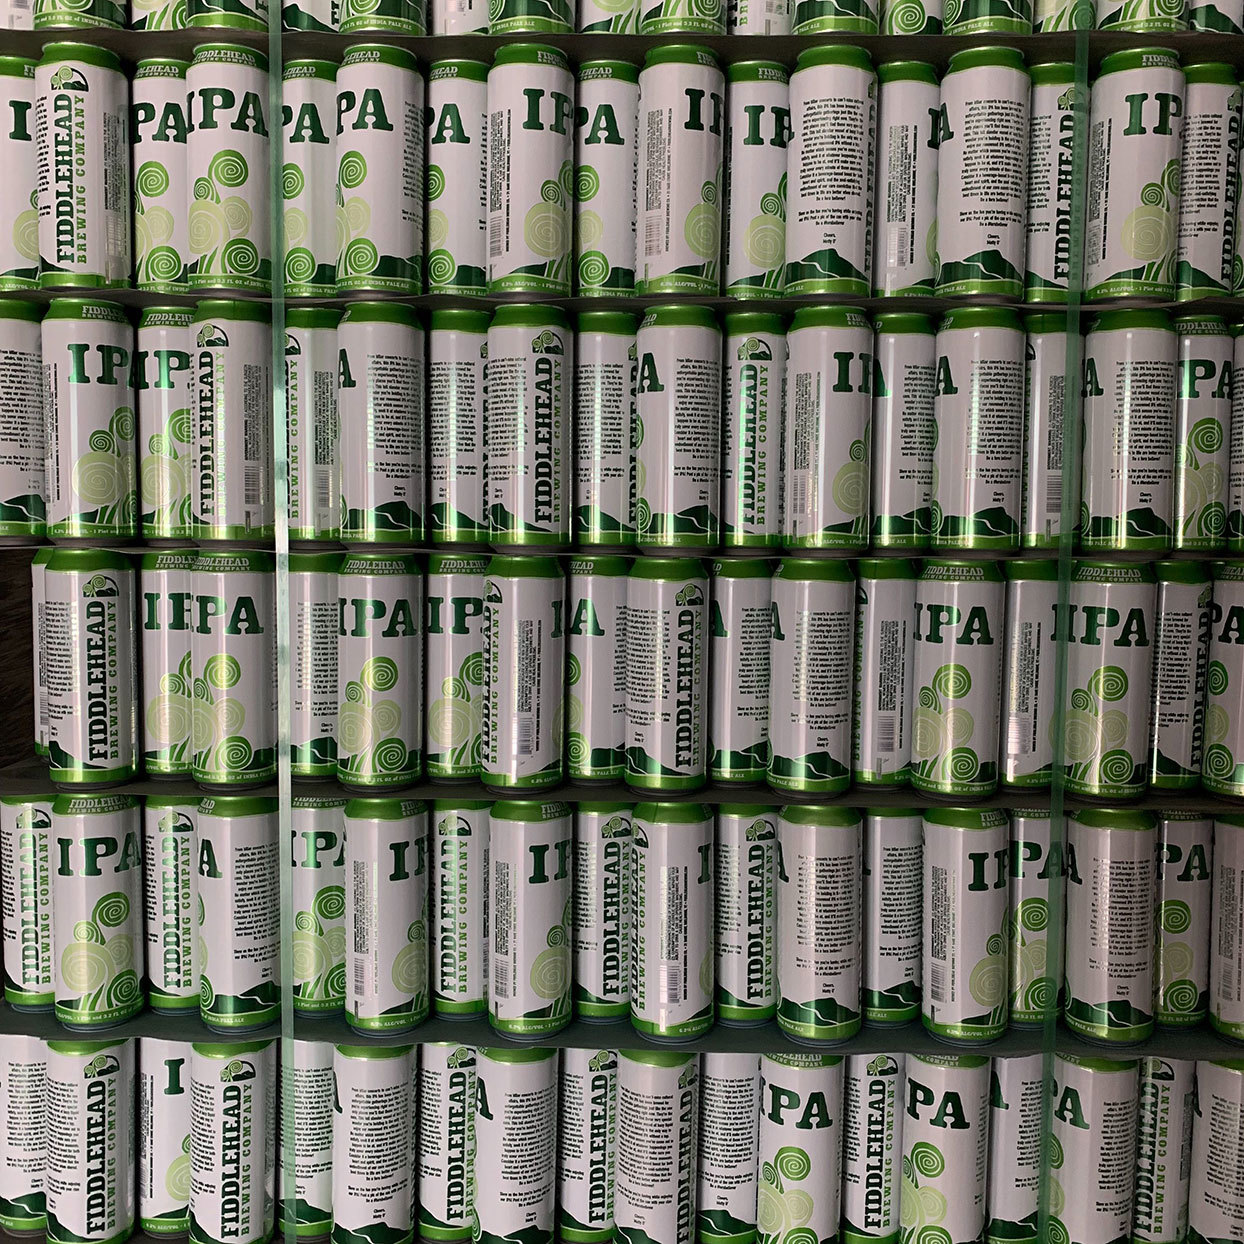 The elusive IPA, canned for special events